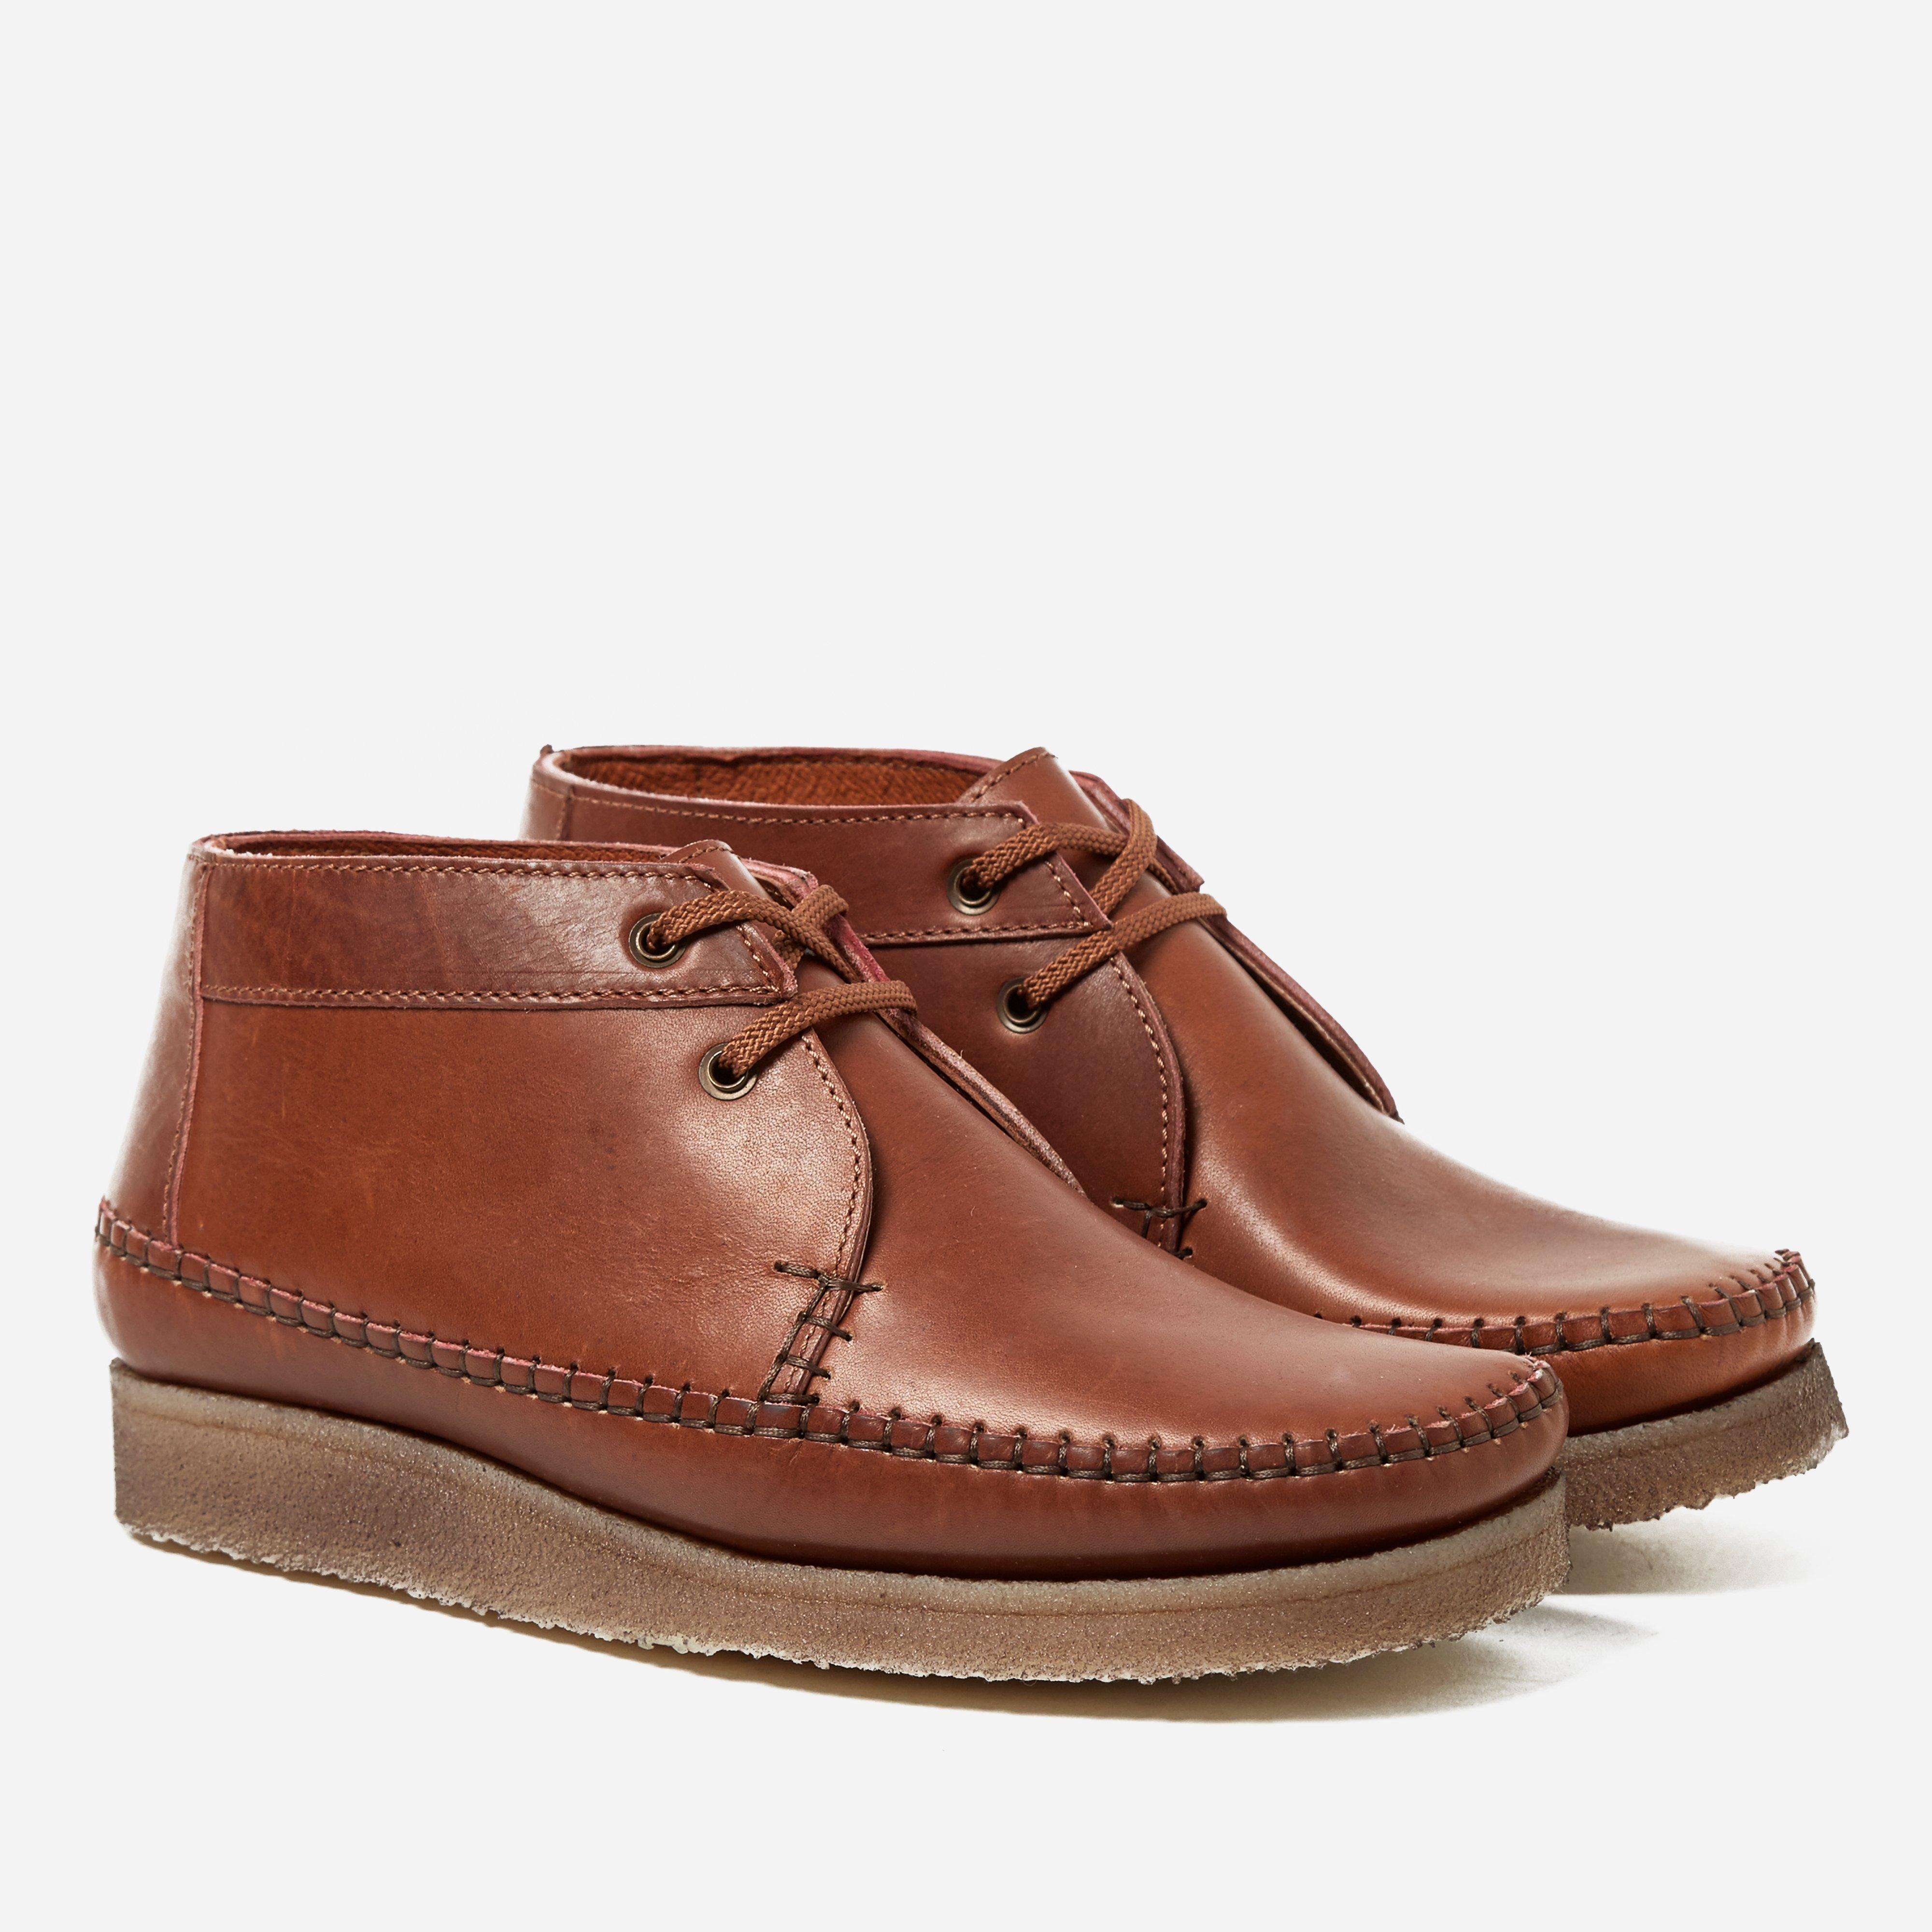 Padmore & Barnes P700 Willow Boot Leather